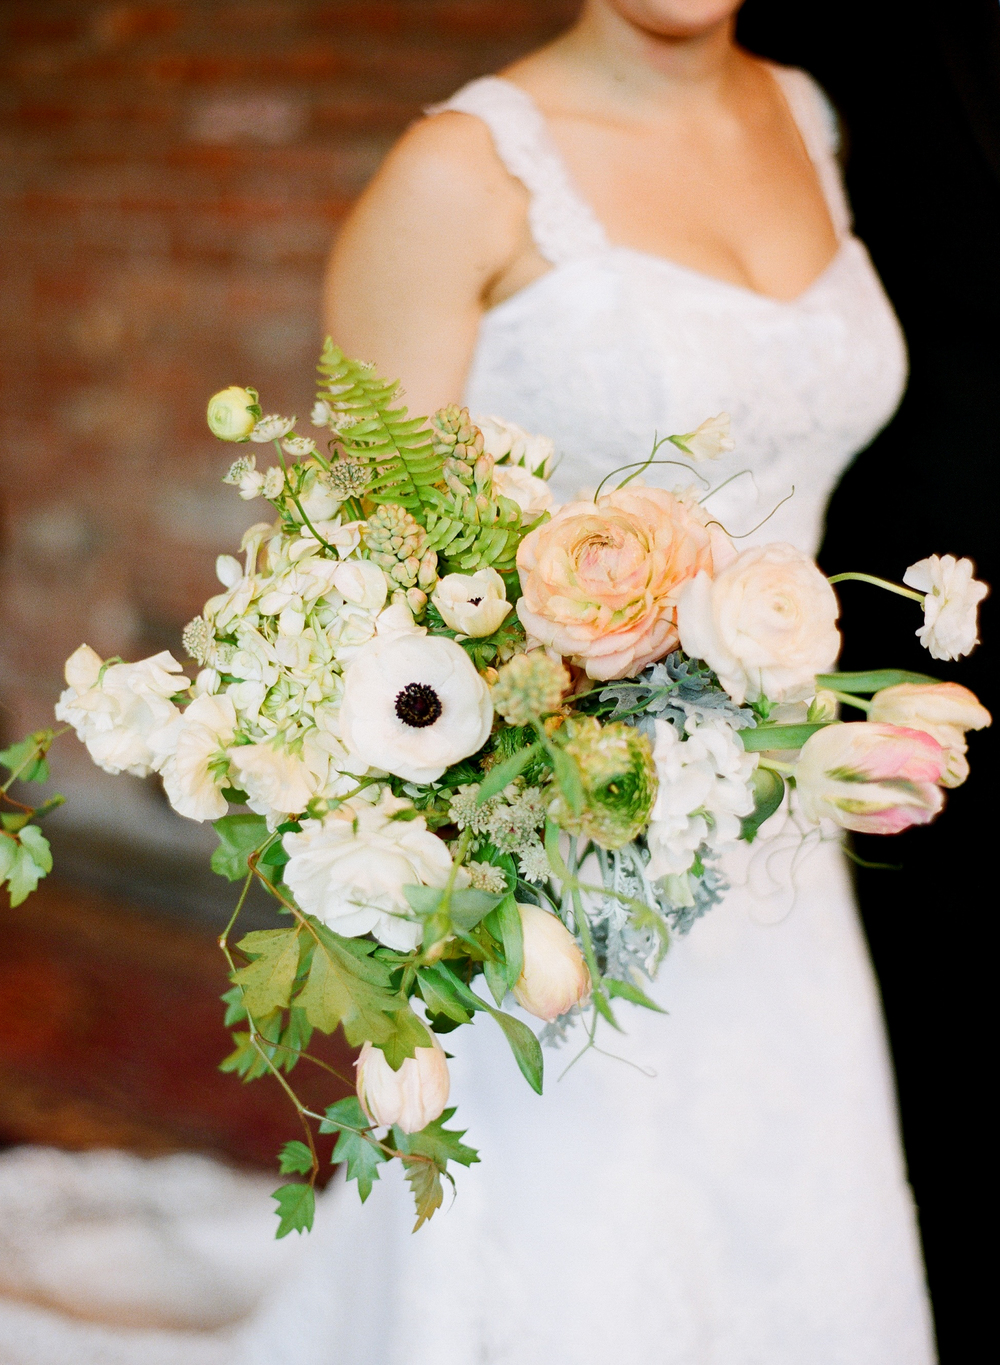 Bridal Bouquet by Saipua. Photo by Weddings by Two.